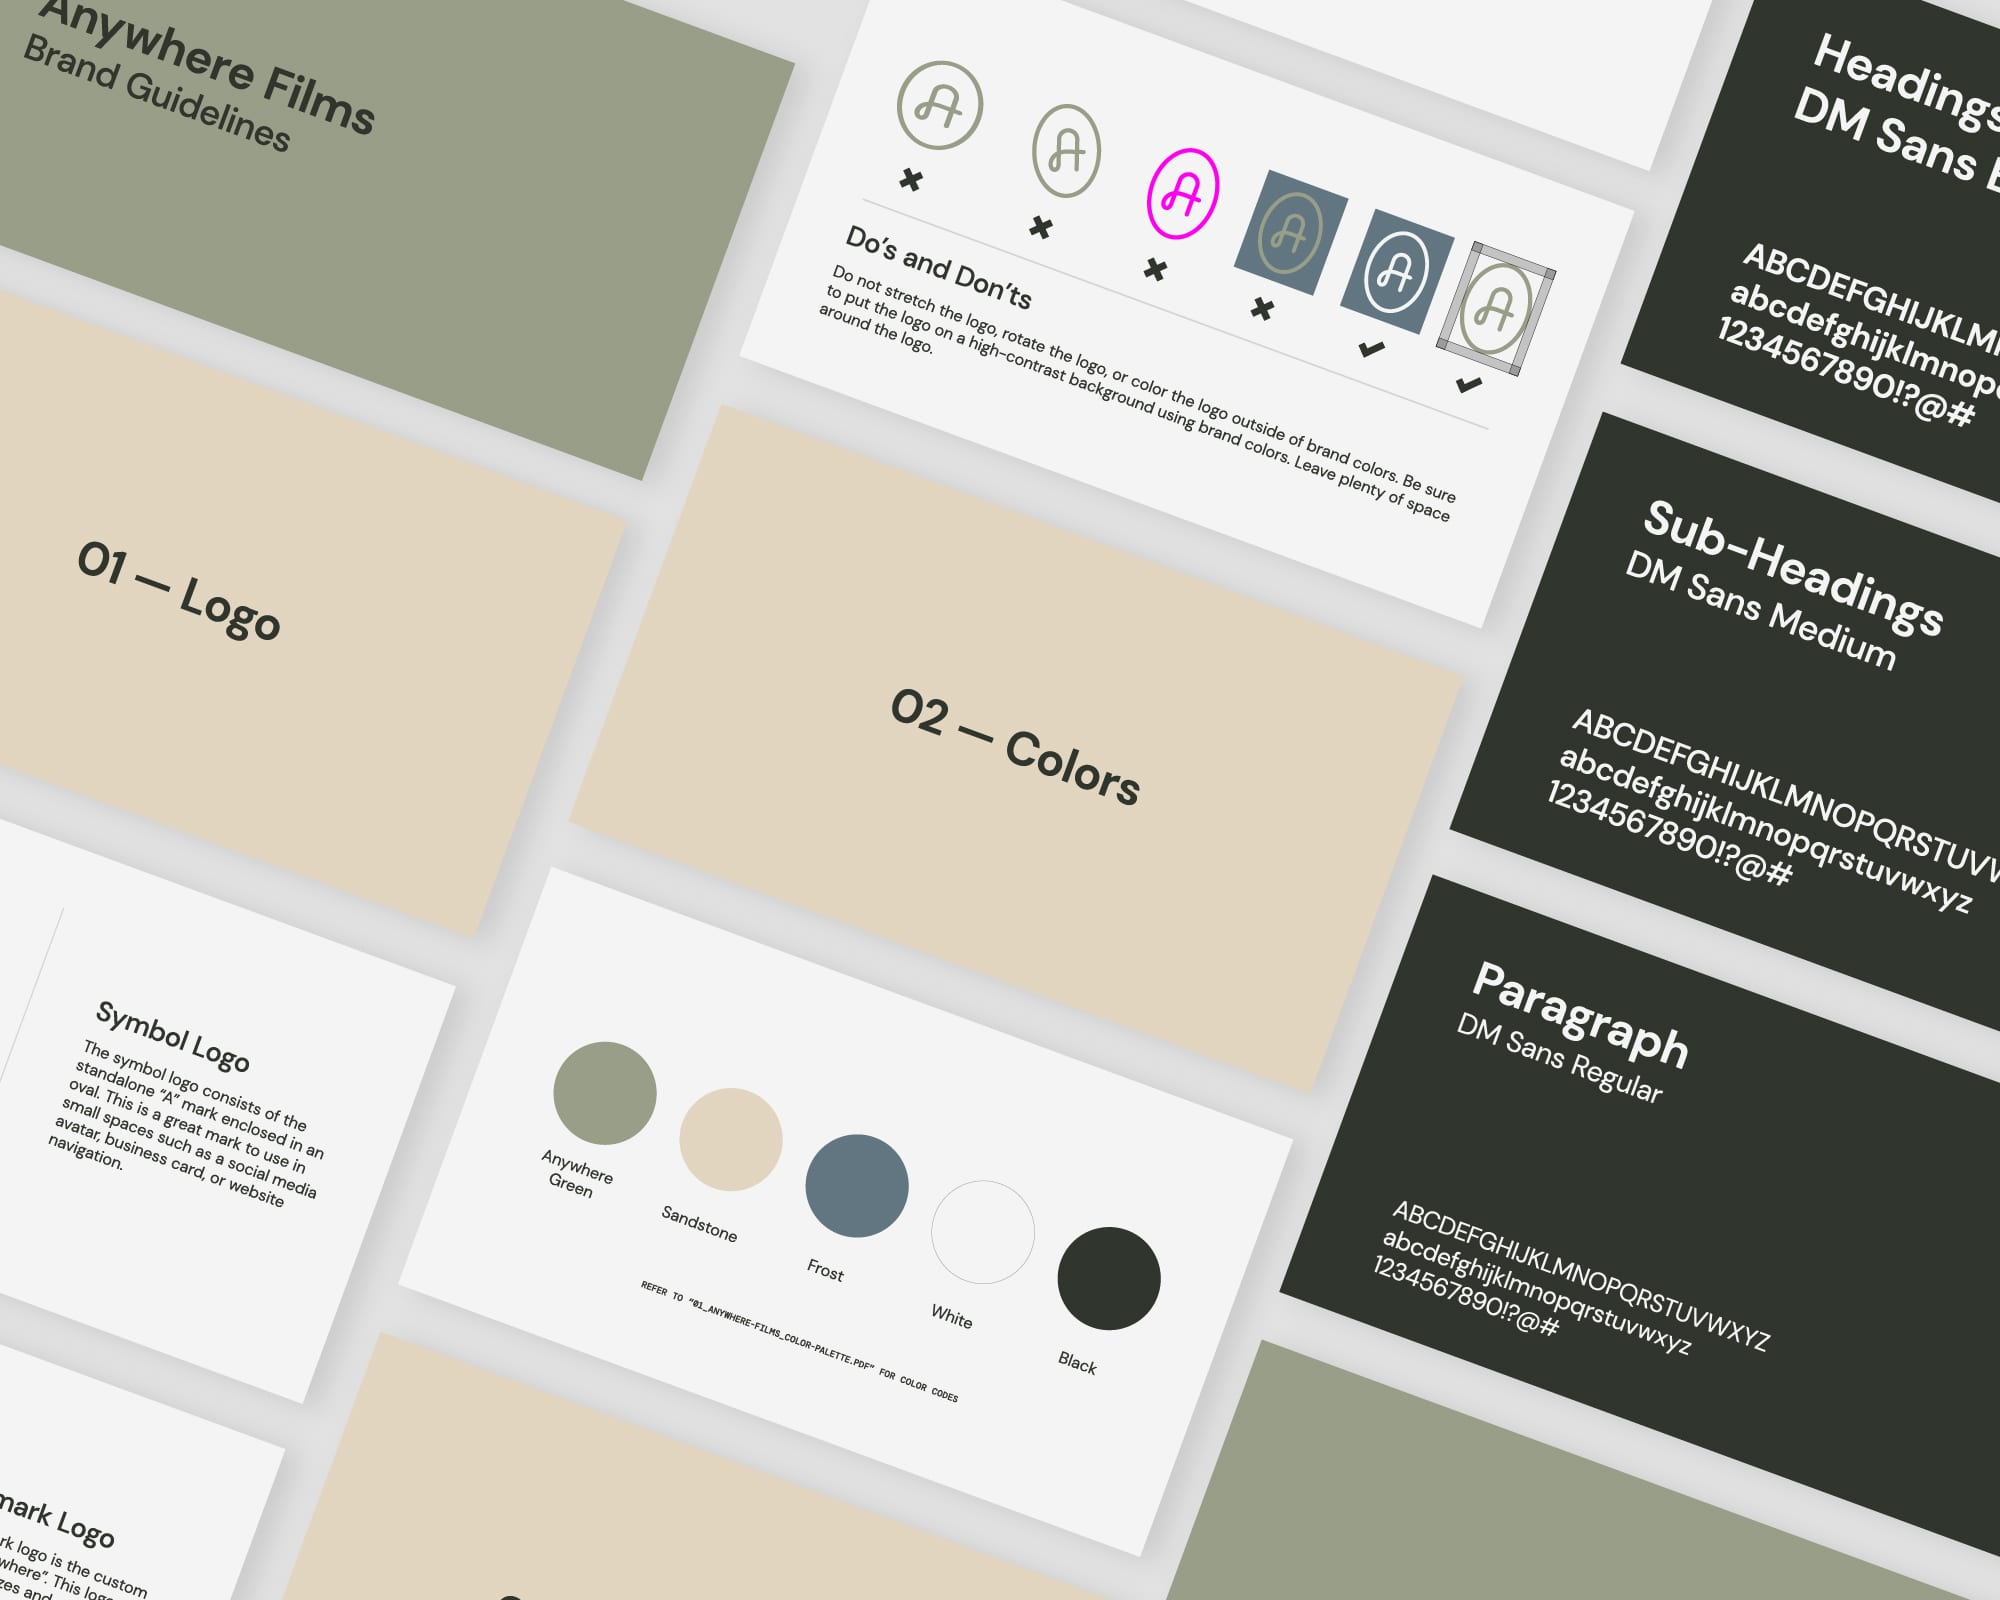 Anywhere Films Brand Guidelines